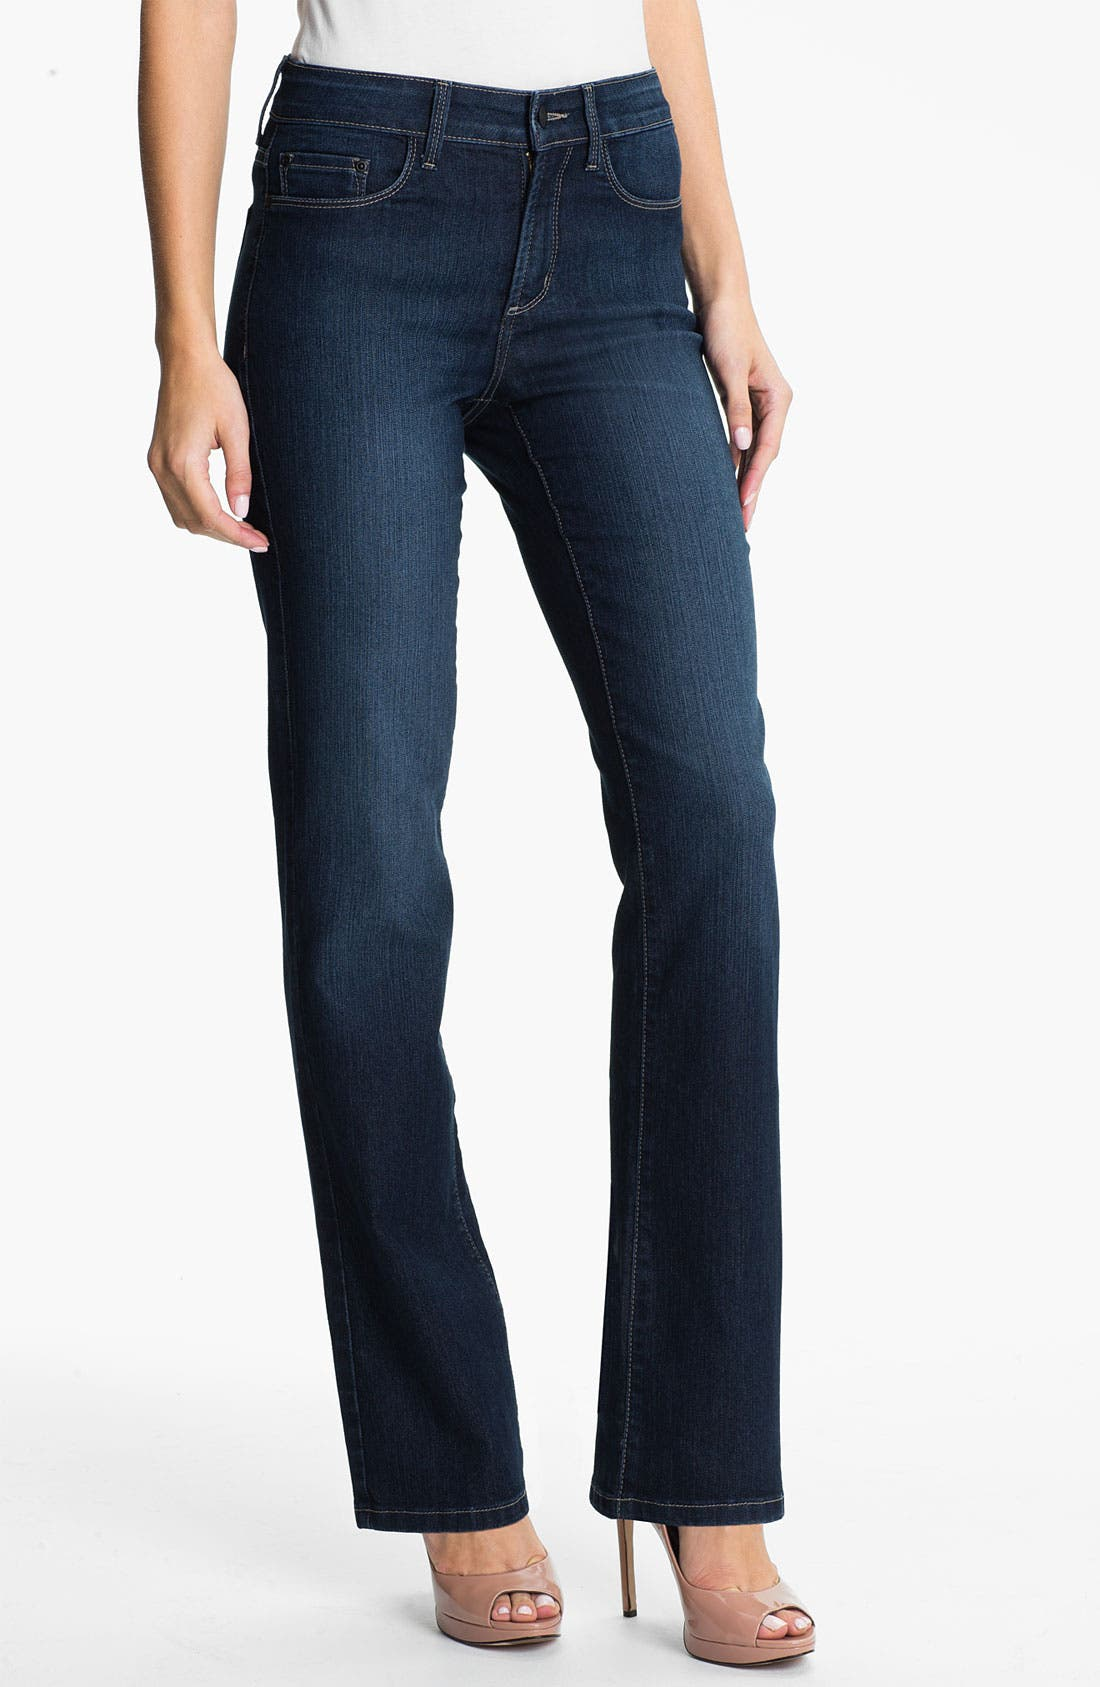 Main Image - NYDJ 'Barbara' Embellished Stretch Bootcut Jeans